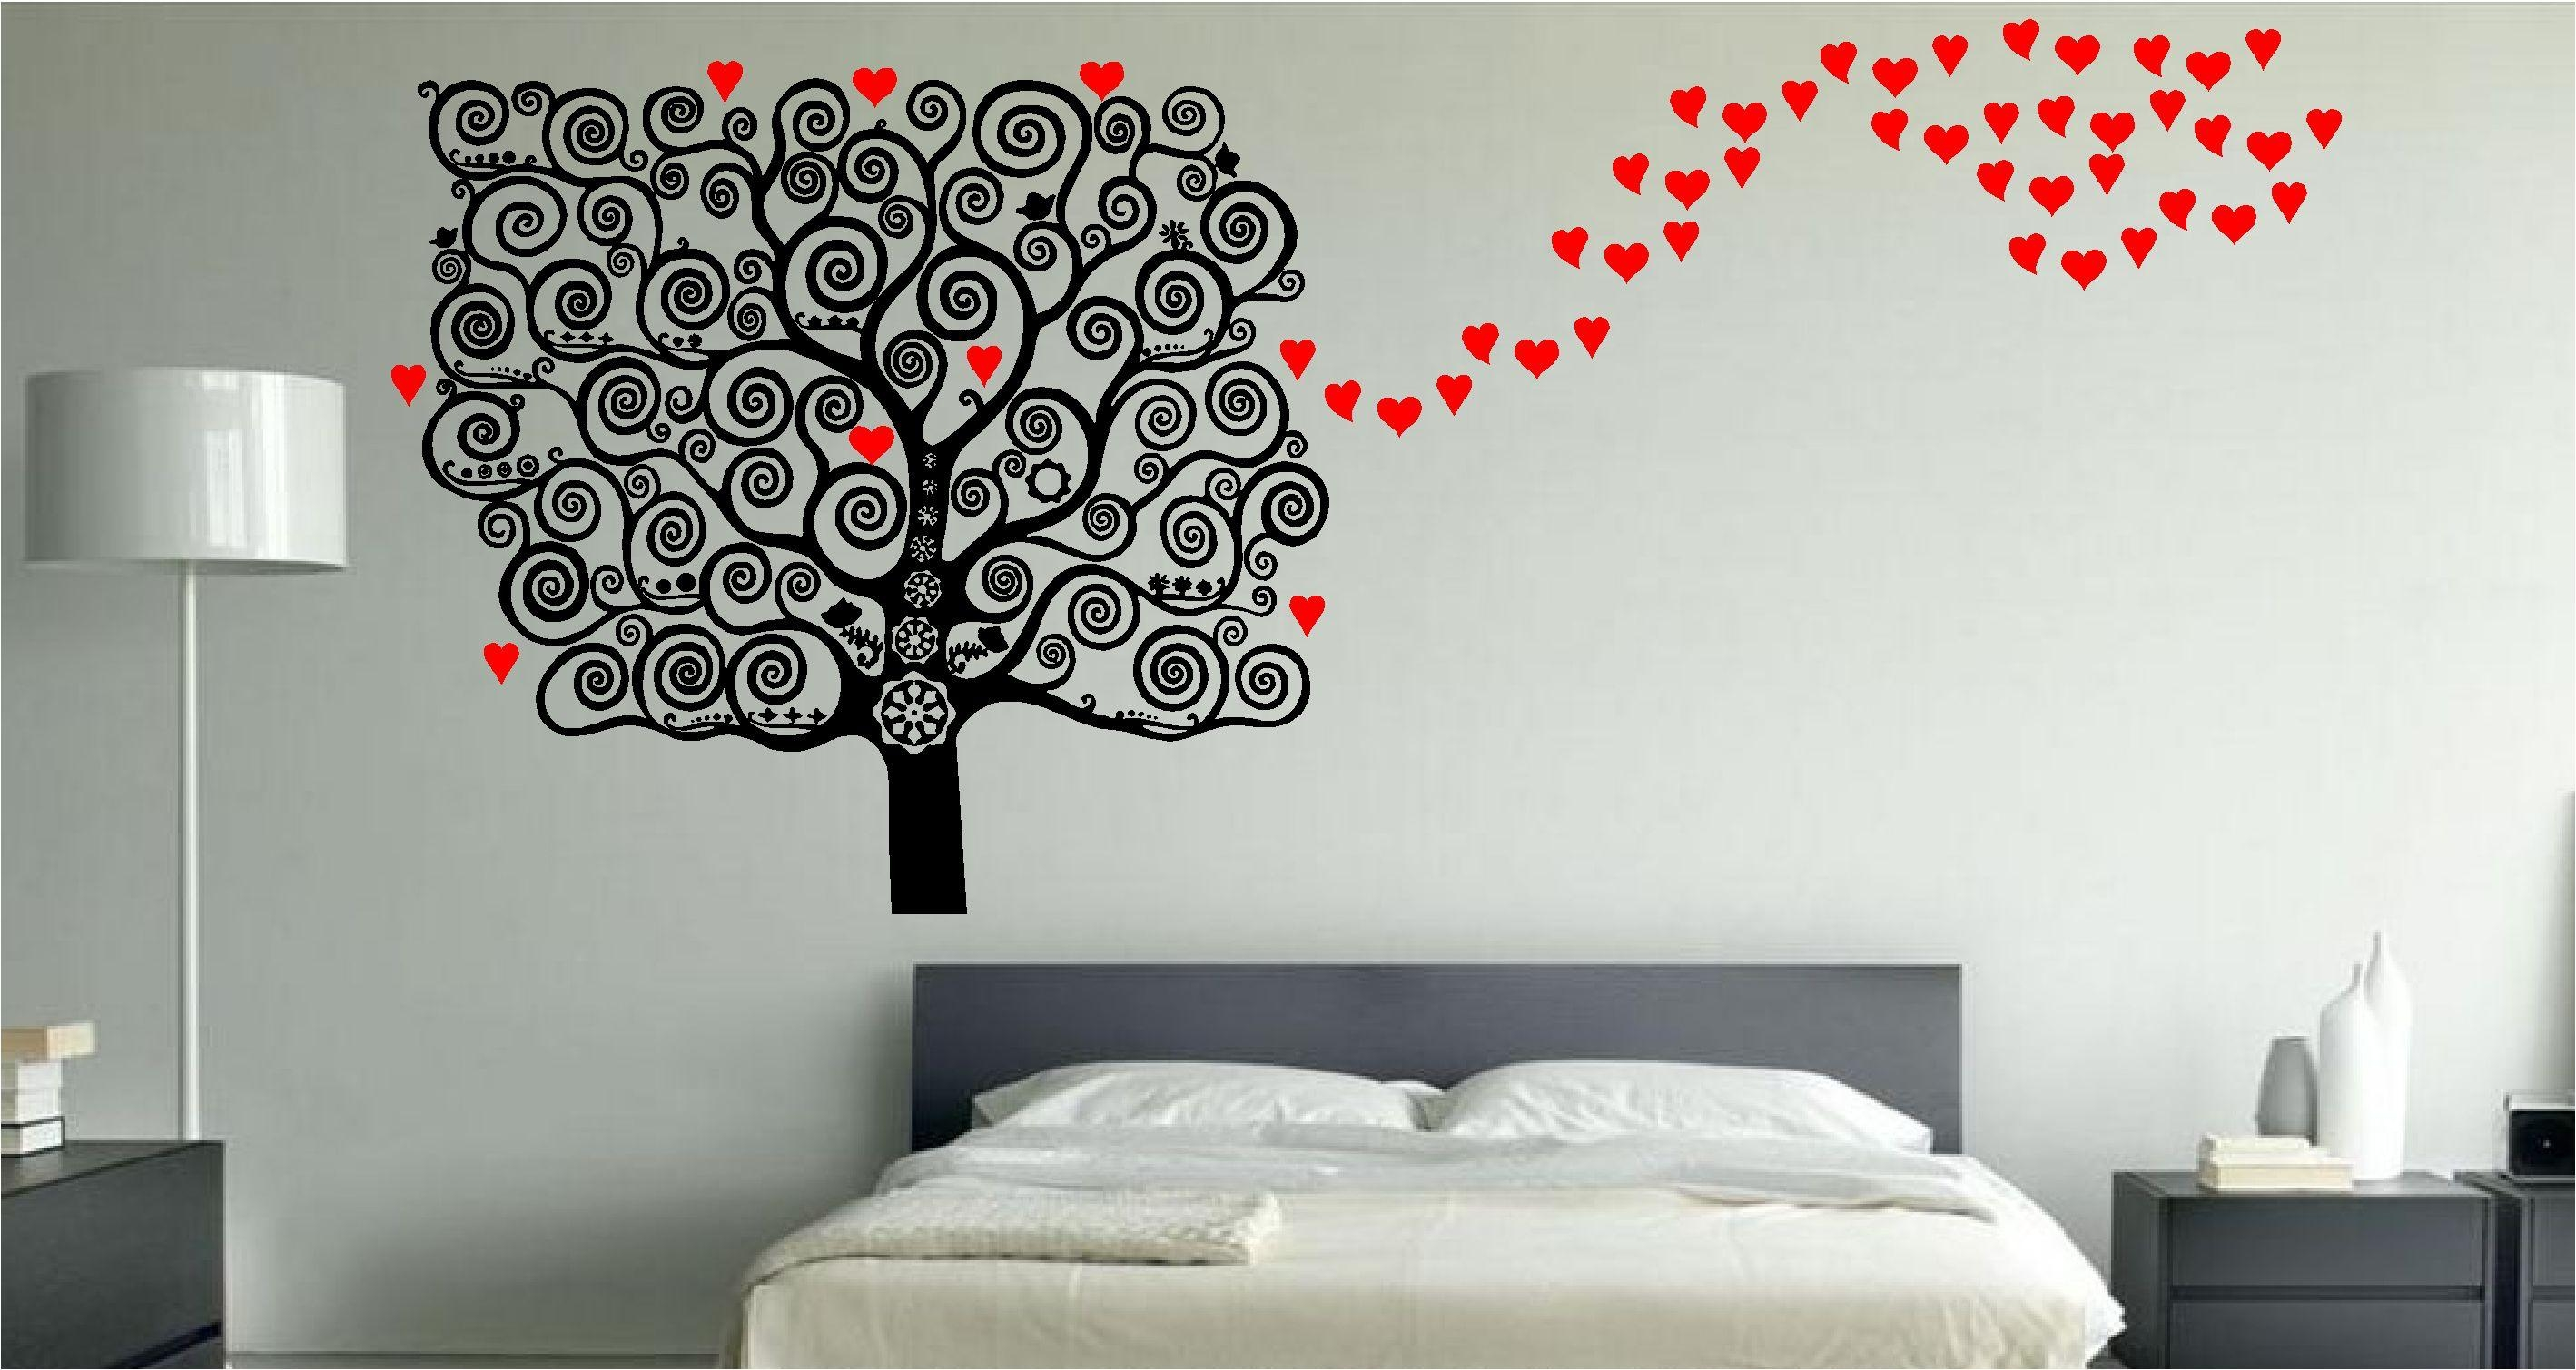 Special Bedroom Wall Art Theme For Cozy And Decorative Look Regarding Wall Art For Bedroom (Image 16 of 20)